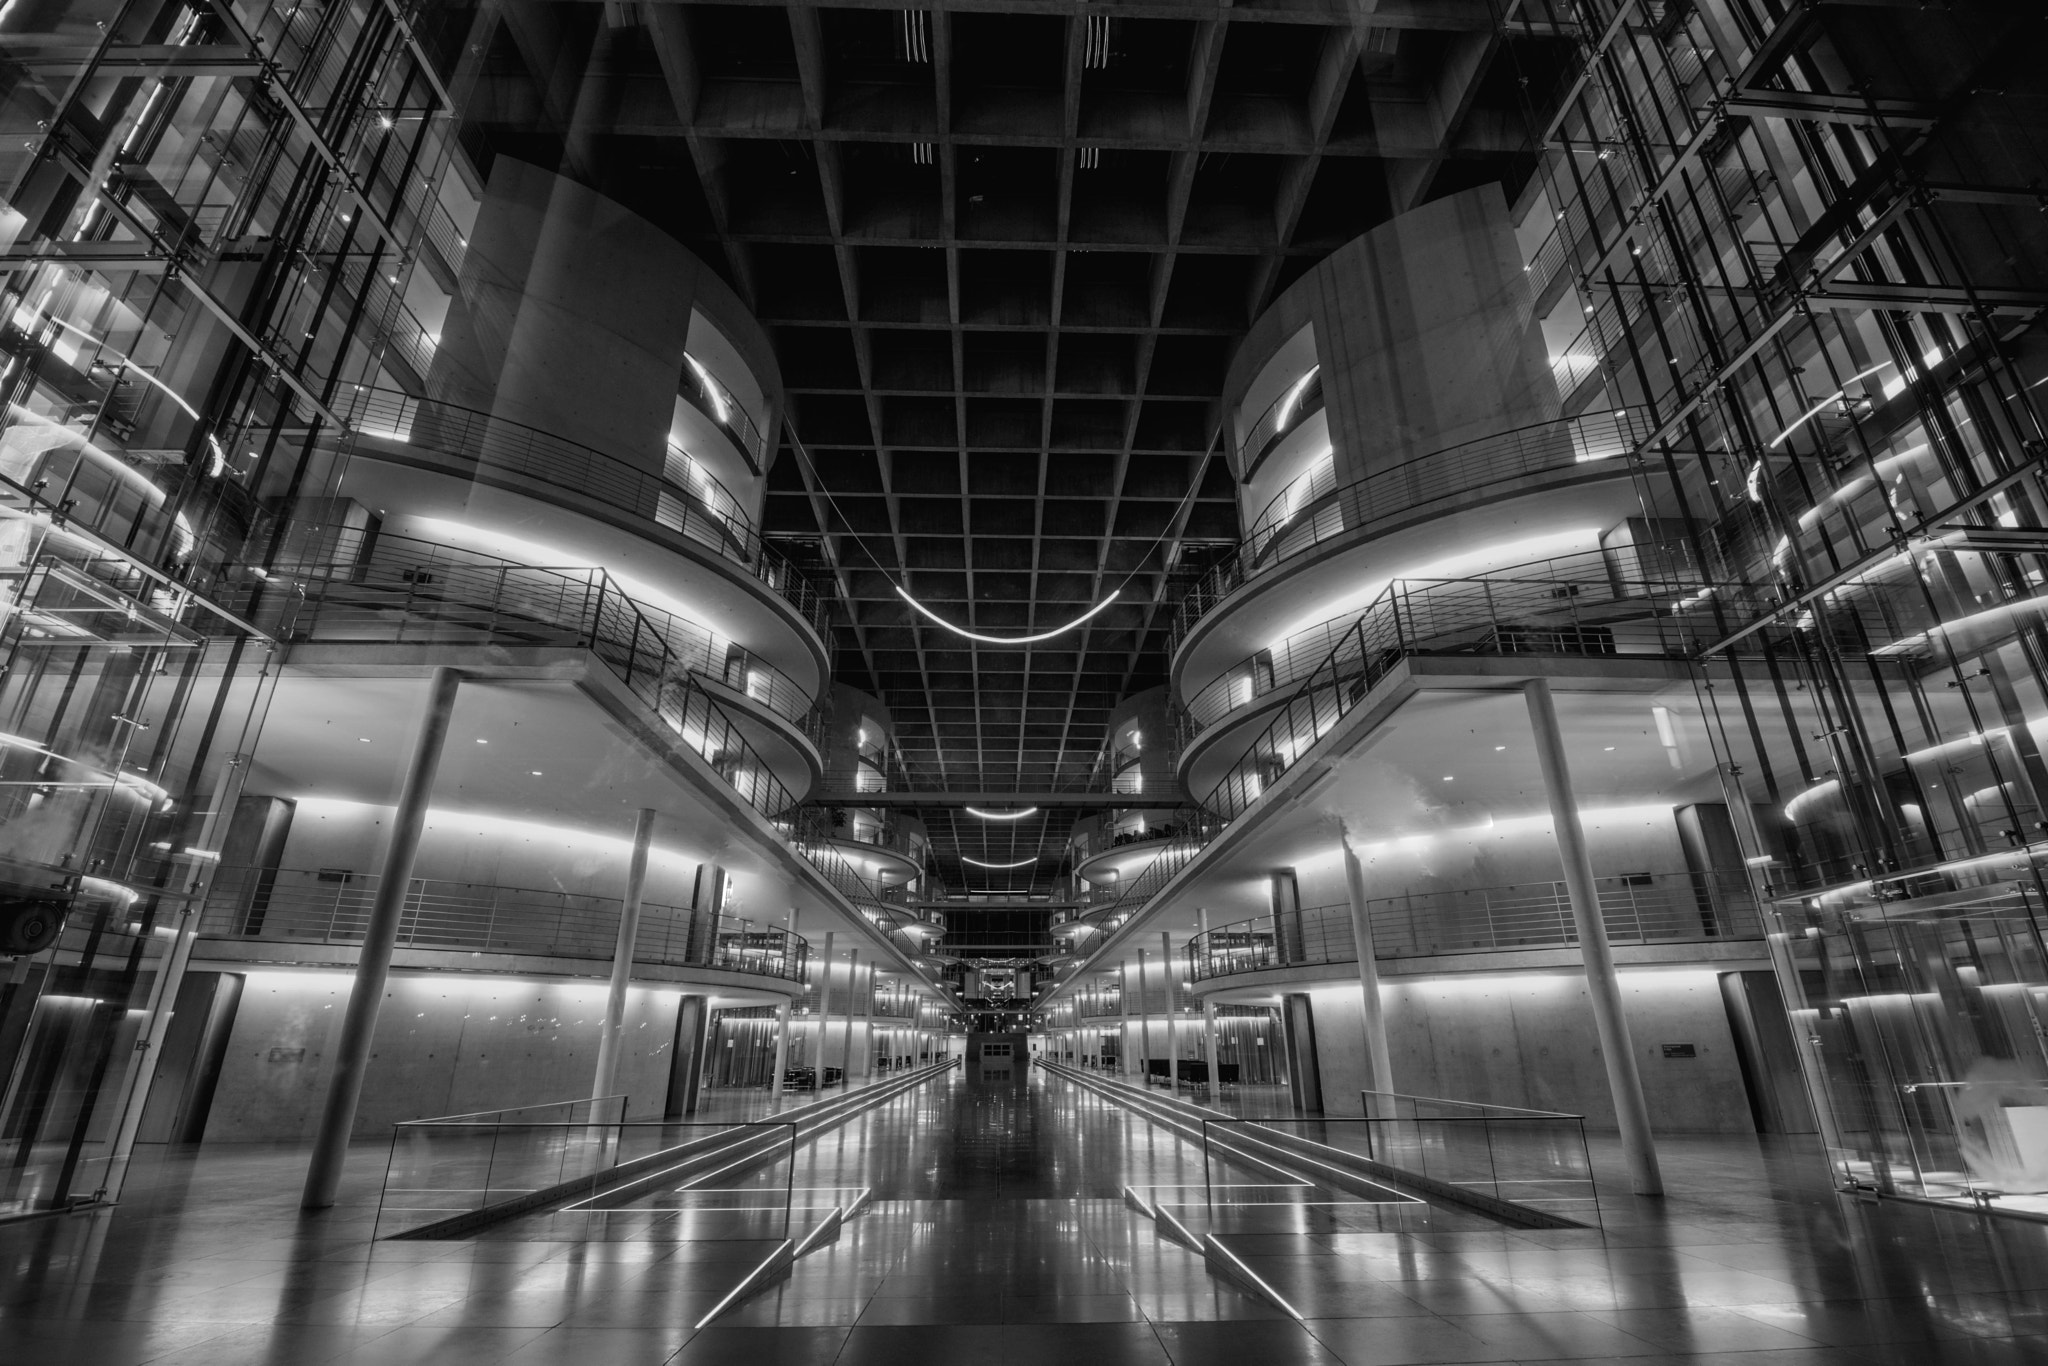 Photograph Paul-Löbe-Haus by Christian Leipner on 500px